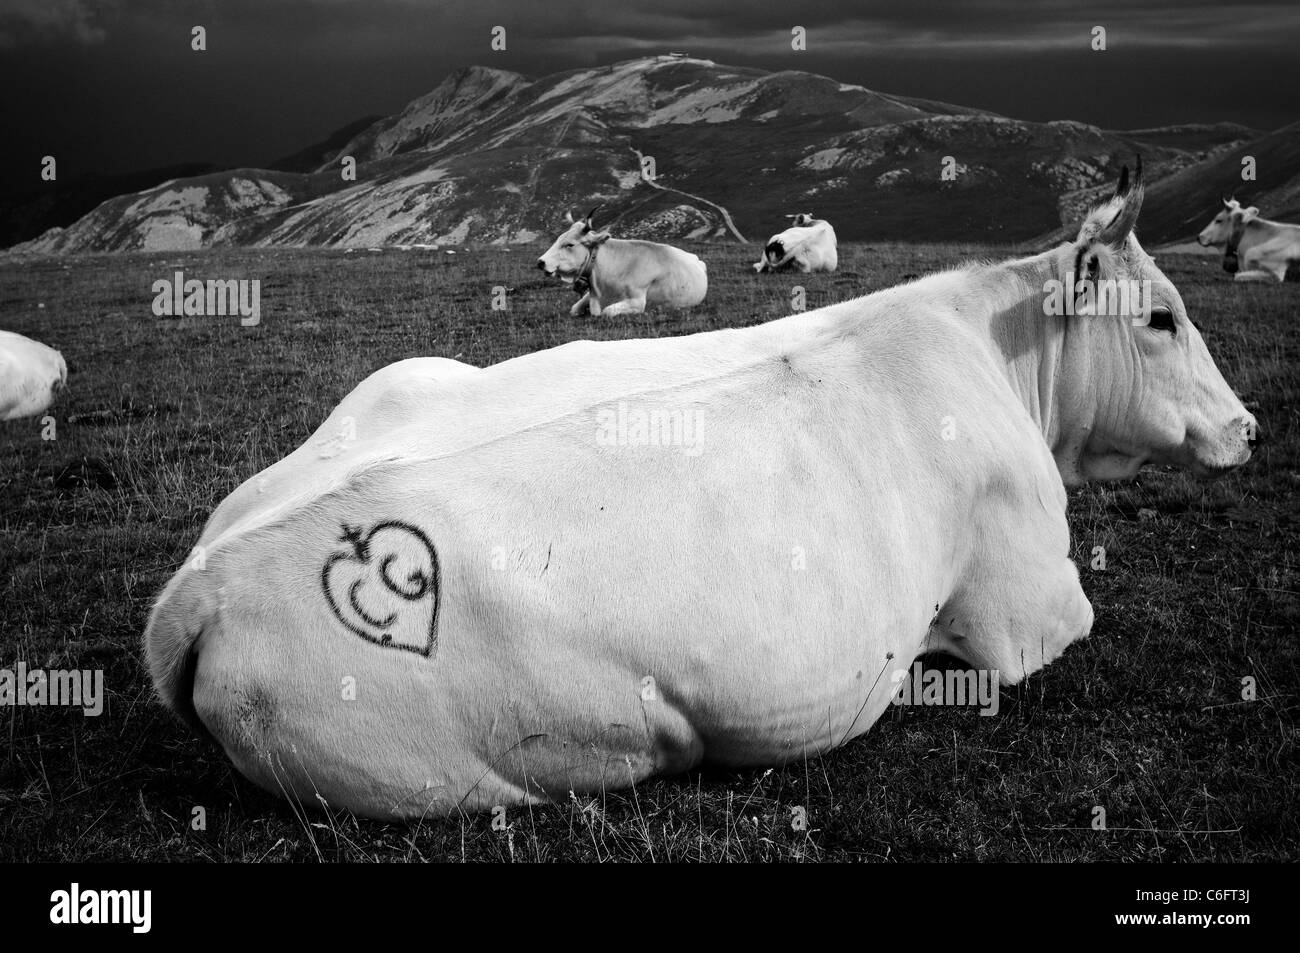 Tattooed cow on a mountain - Stock Image